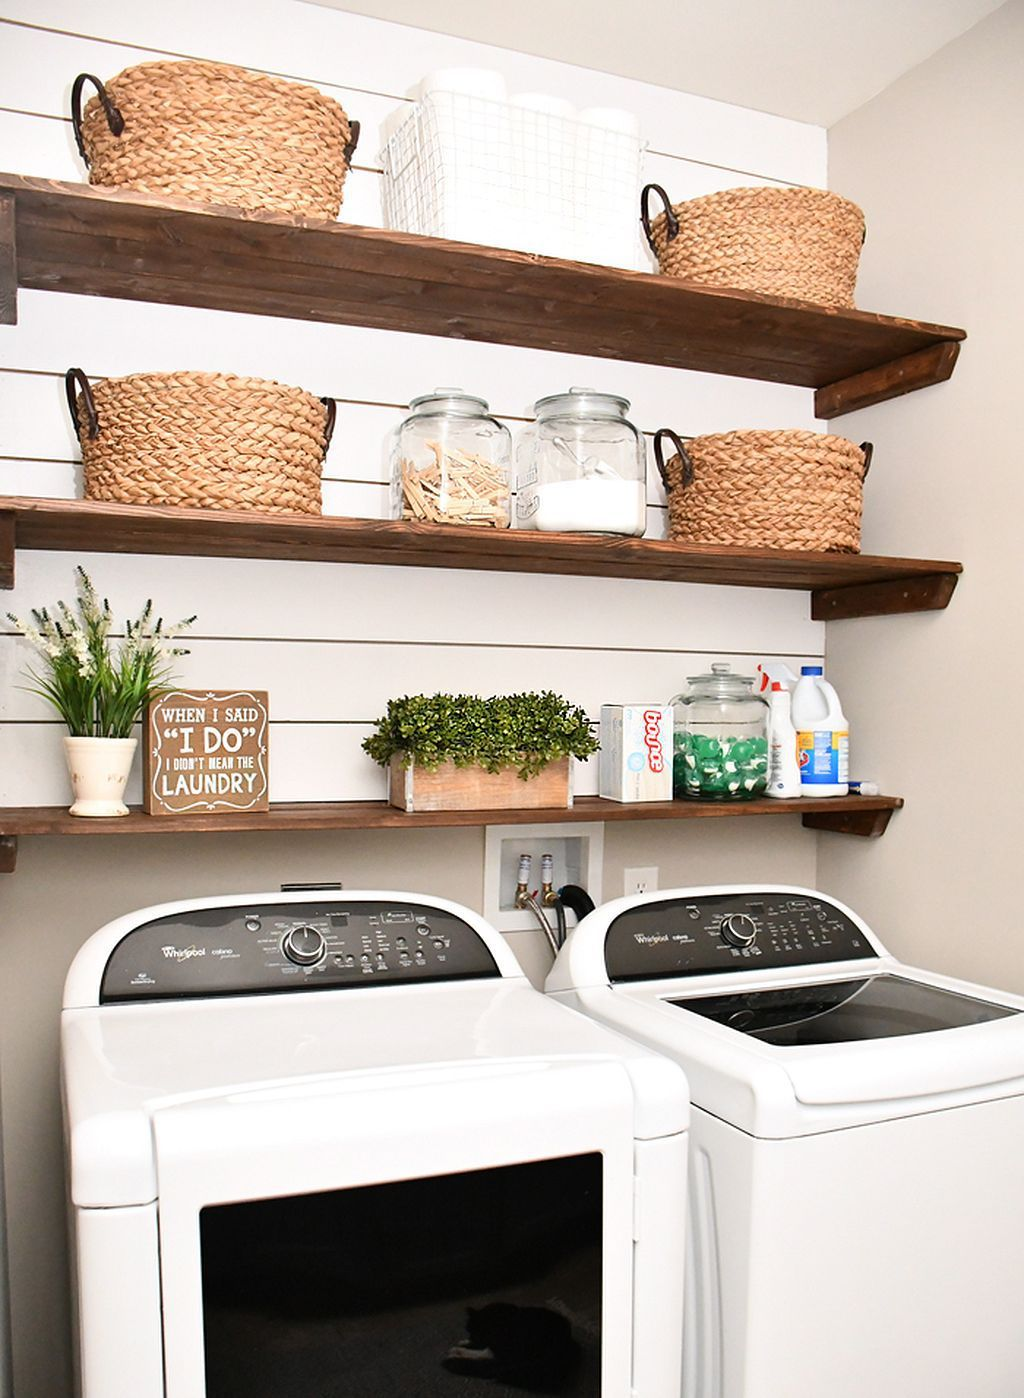 Awesome Ideas For Laundry Room Makeover 11 Small Laundry Room Organization Small Laundry Room Makeover Laundry Room Remodel